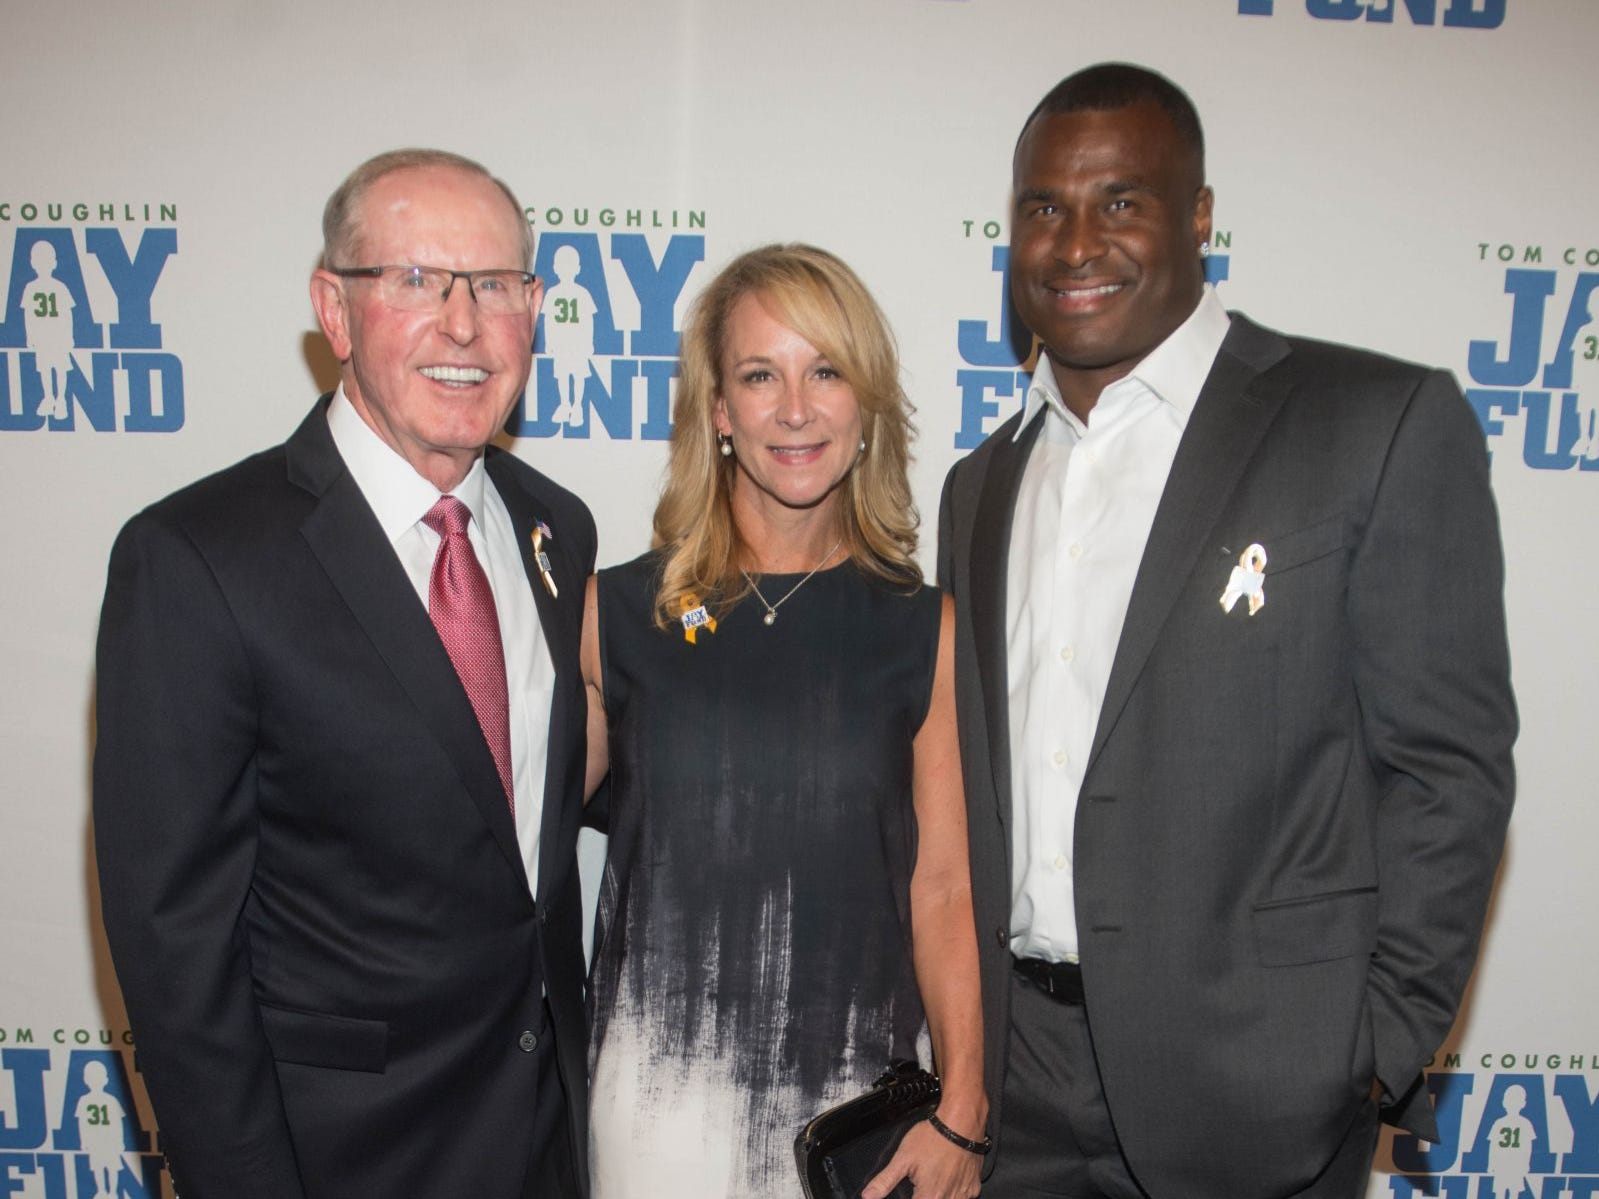 Tom Coughlin, Anita Marks and Jessie Armstead. The 14th annual Jay Fund Champions for Children Gala was held at Cipriani 42nd Street. 09/21/2018